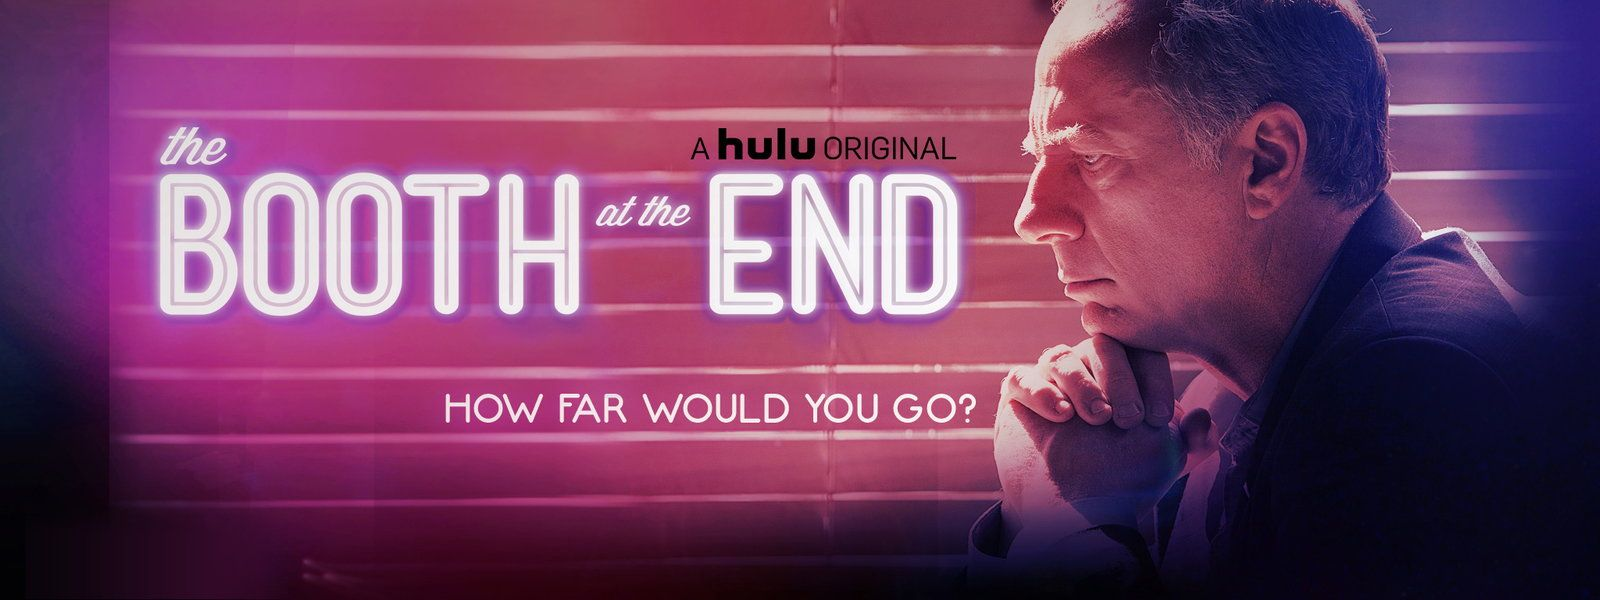 The Booth at the End - Online - Free at Hulu